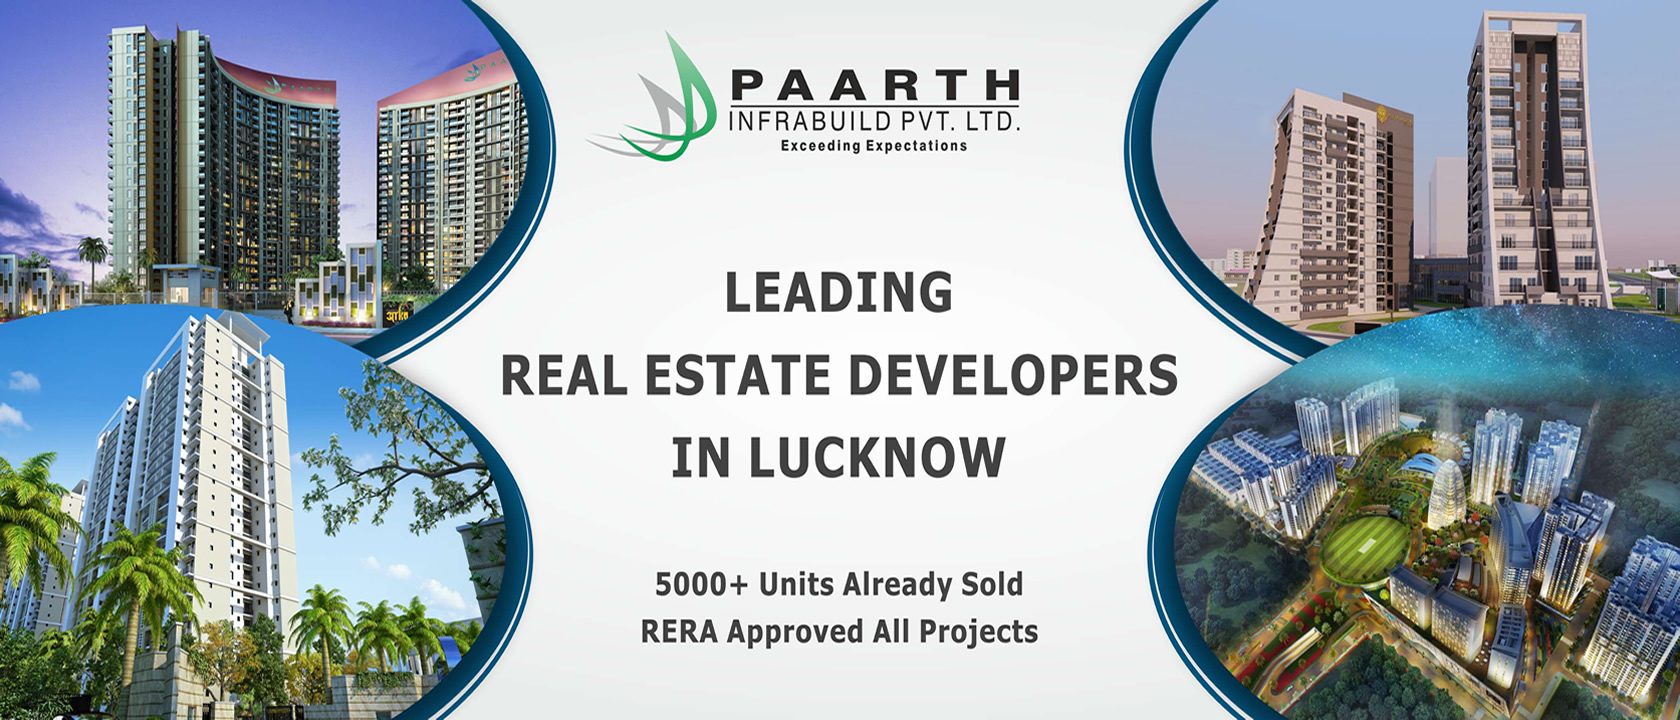 Flats in lucknow